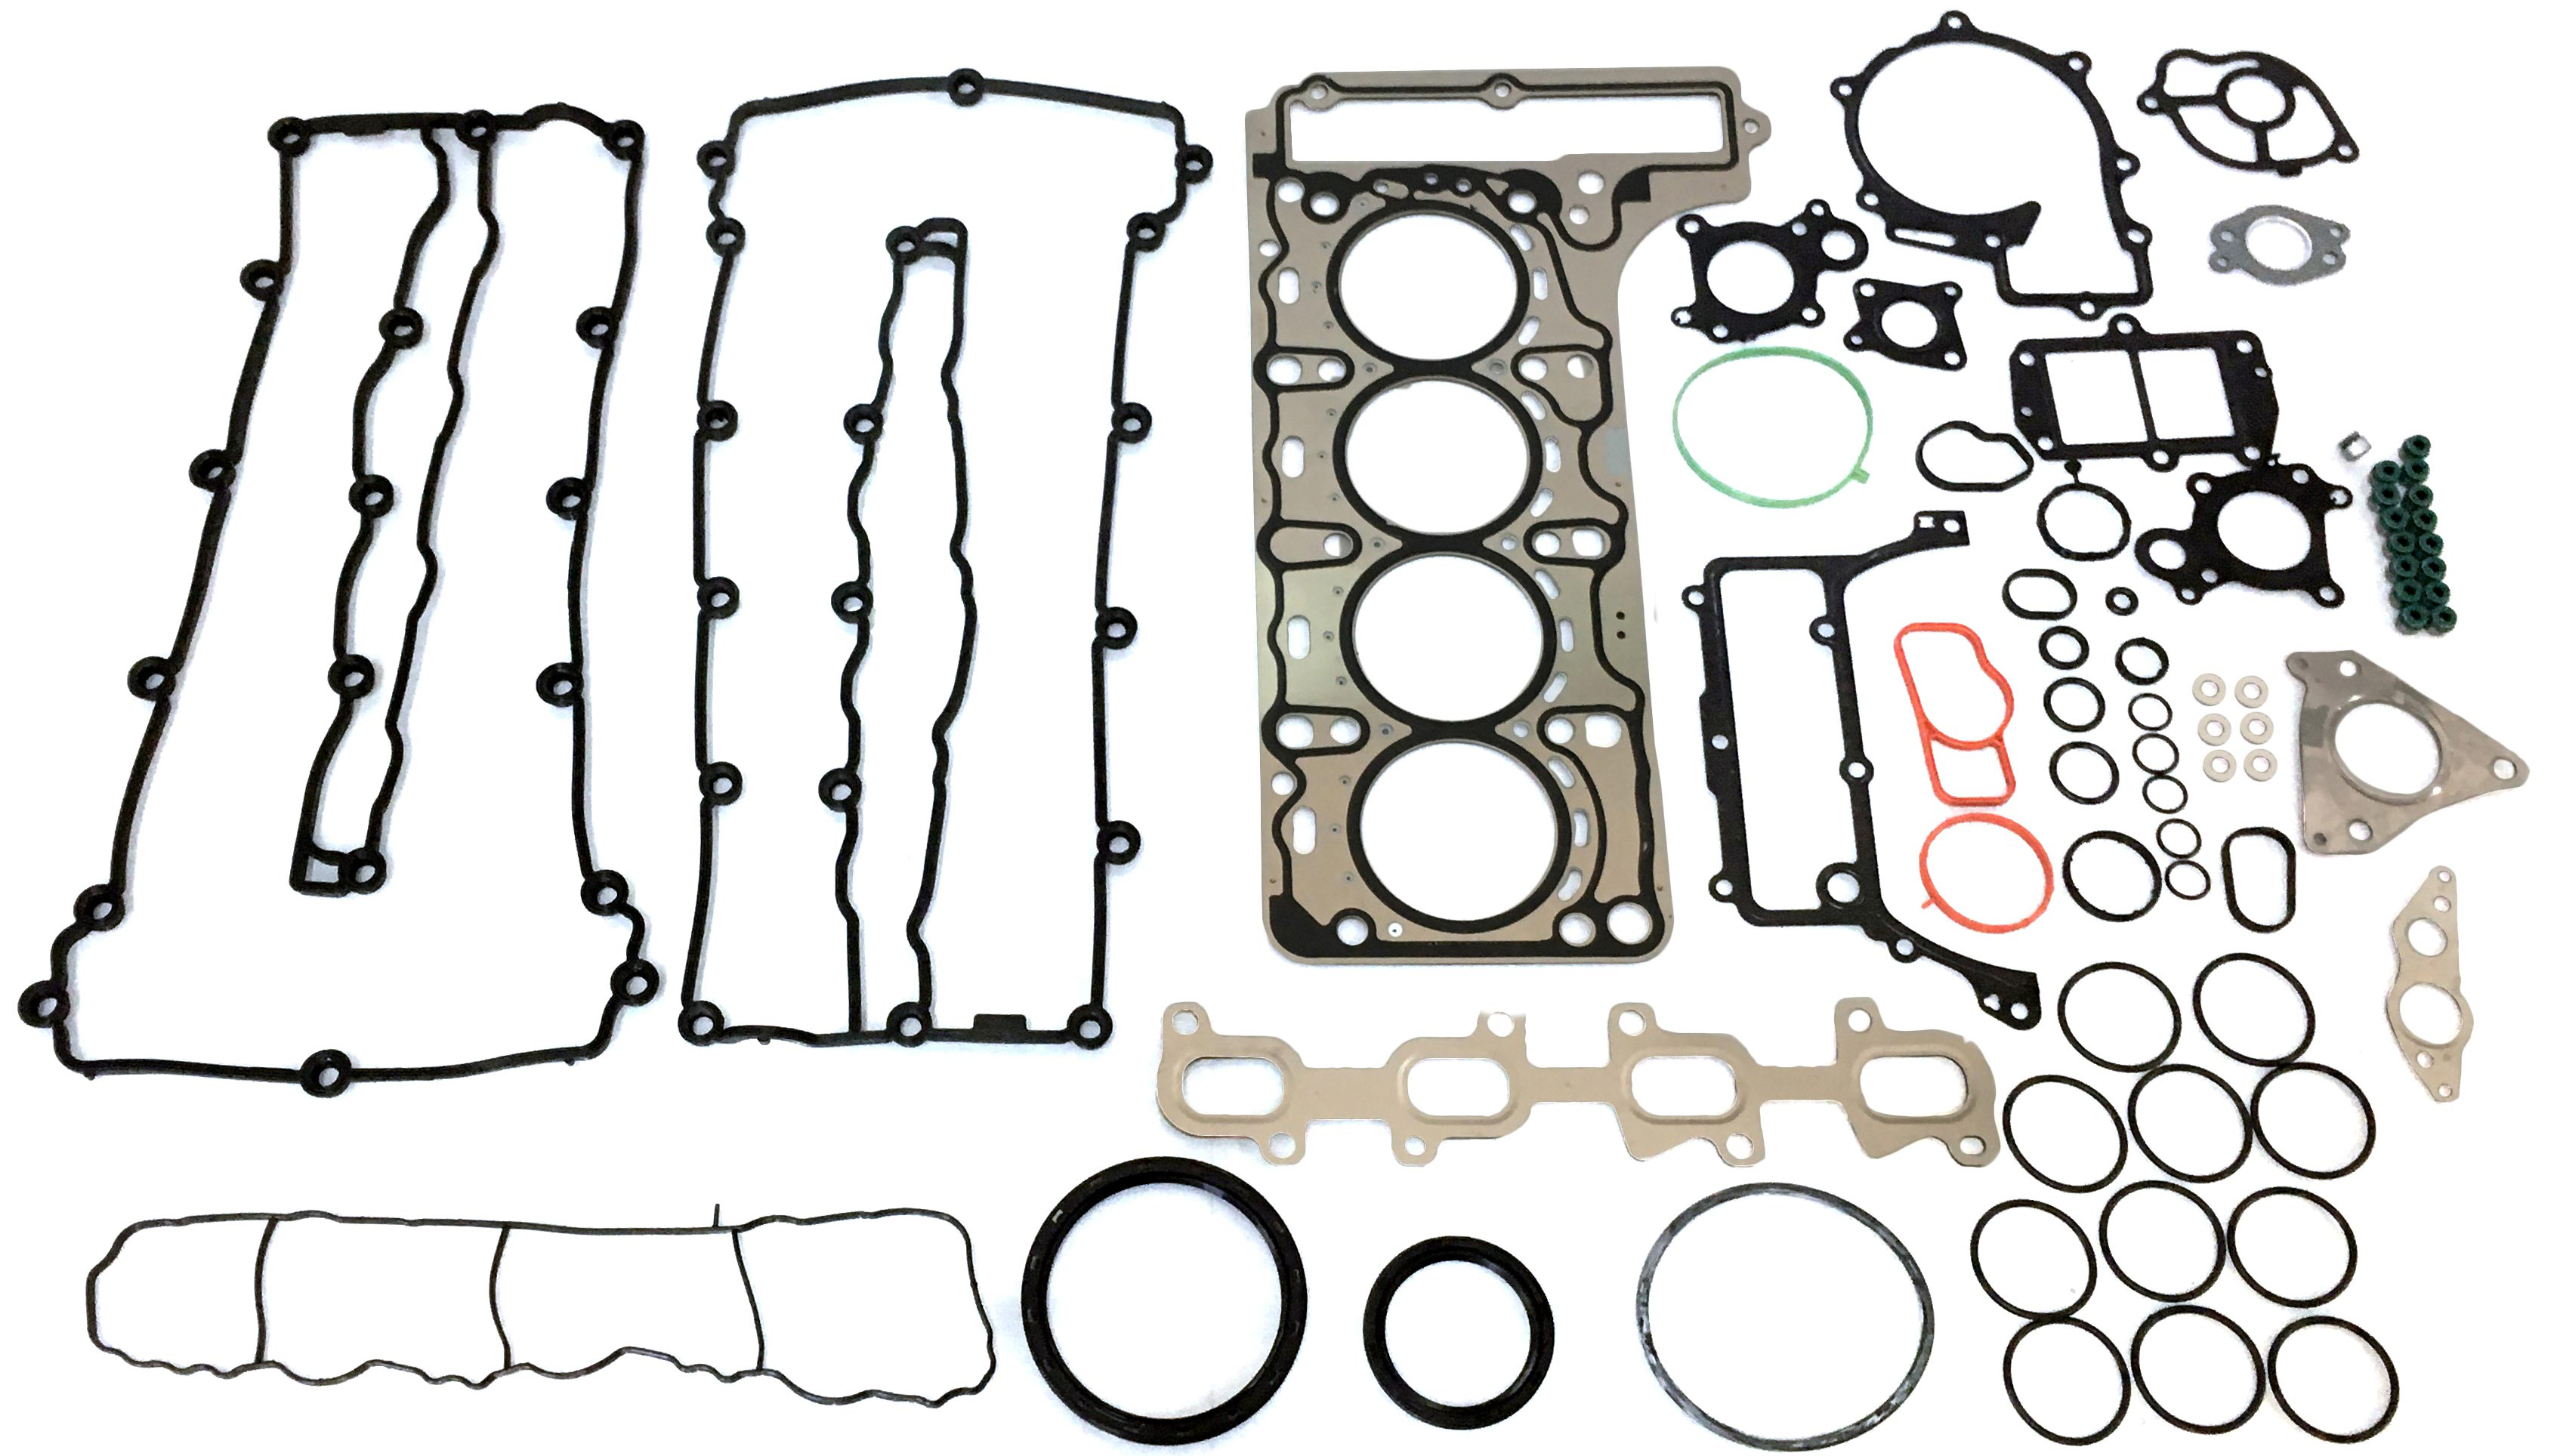 Gasket set cylinder head gasket Mercedes-Benz W205 C250 2.2 CDI 651.911 NEW